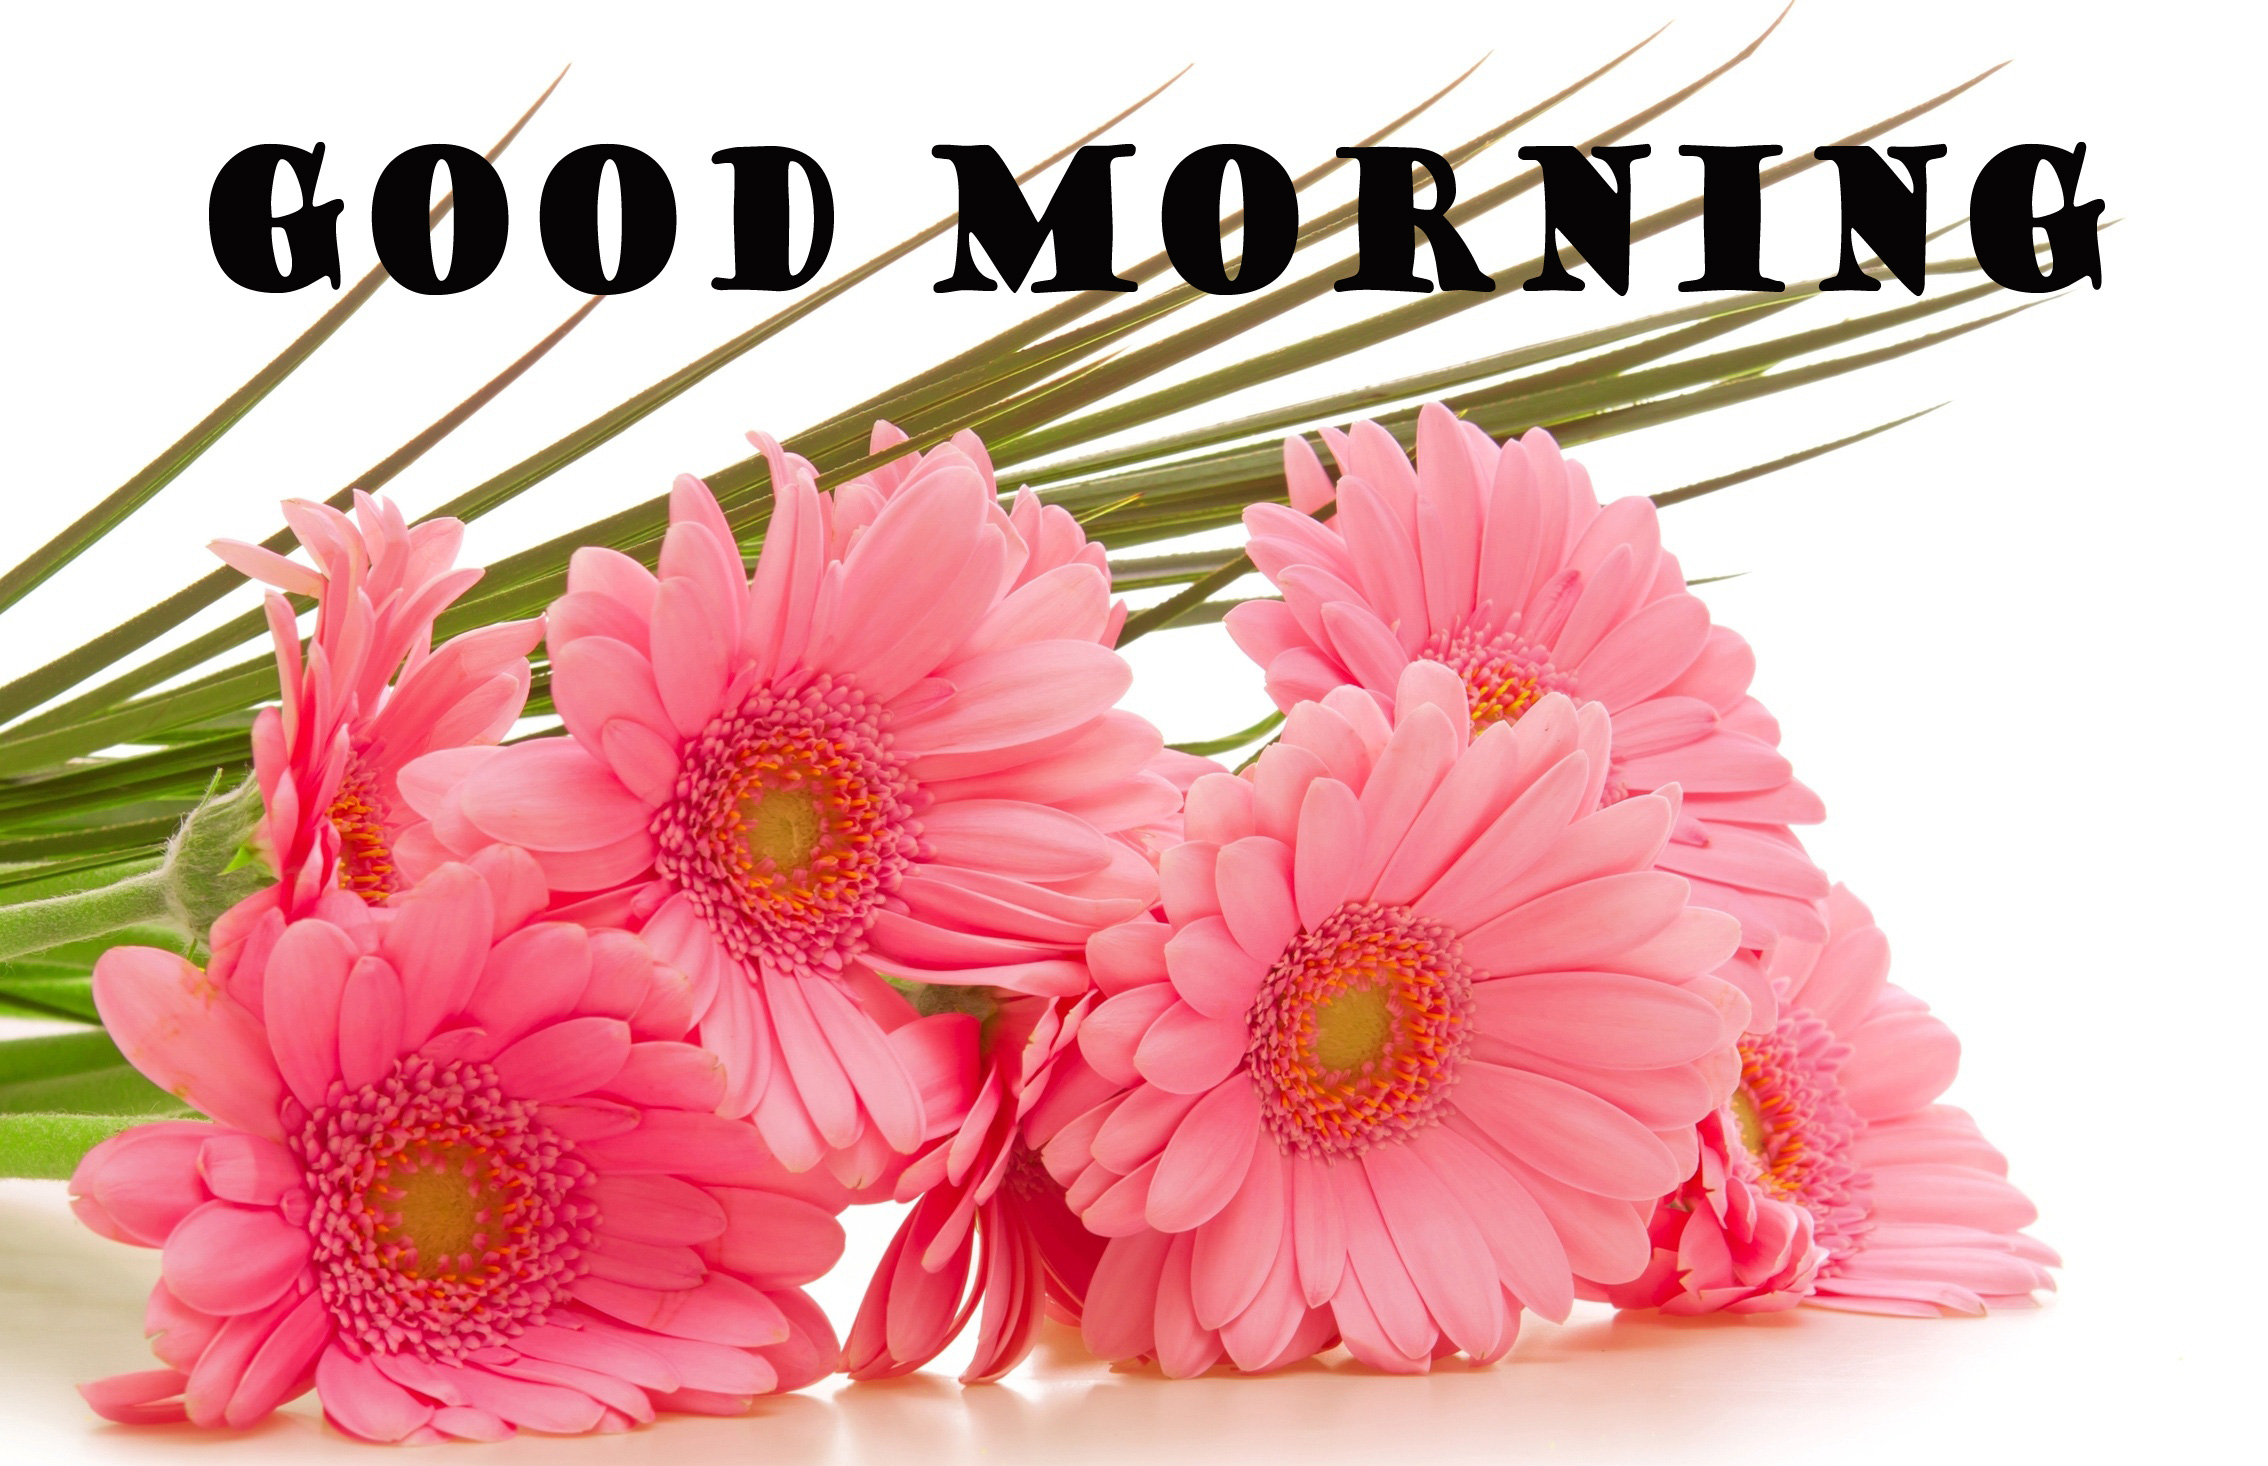 Good Morning Flowers Wallpaper Pictures Images For Mobile